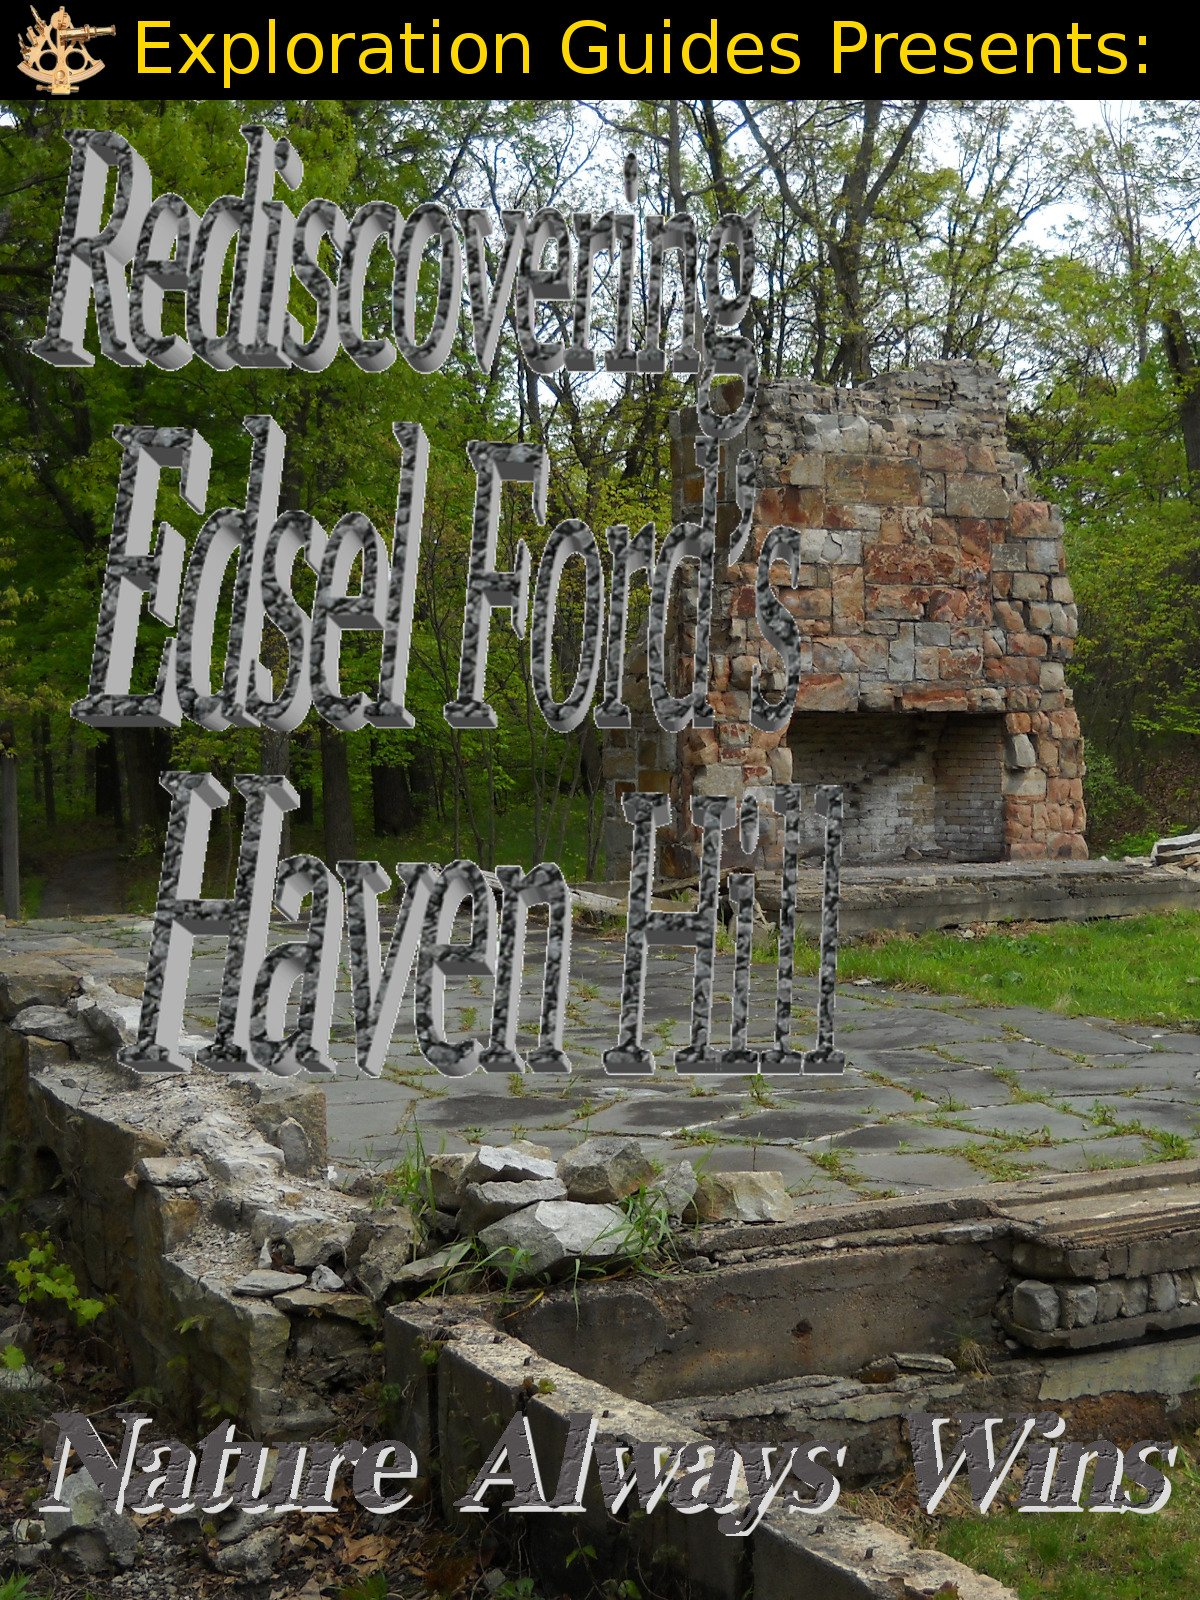 Exploration Guides Presents: Rediscovering Edesl Ford's Haven Hill